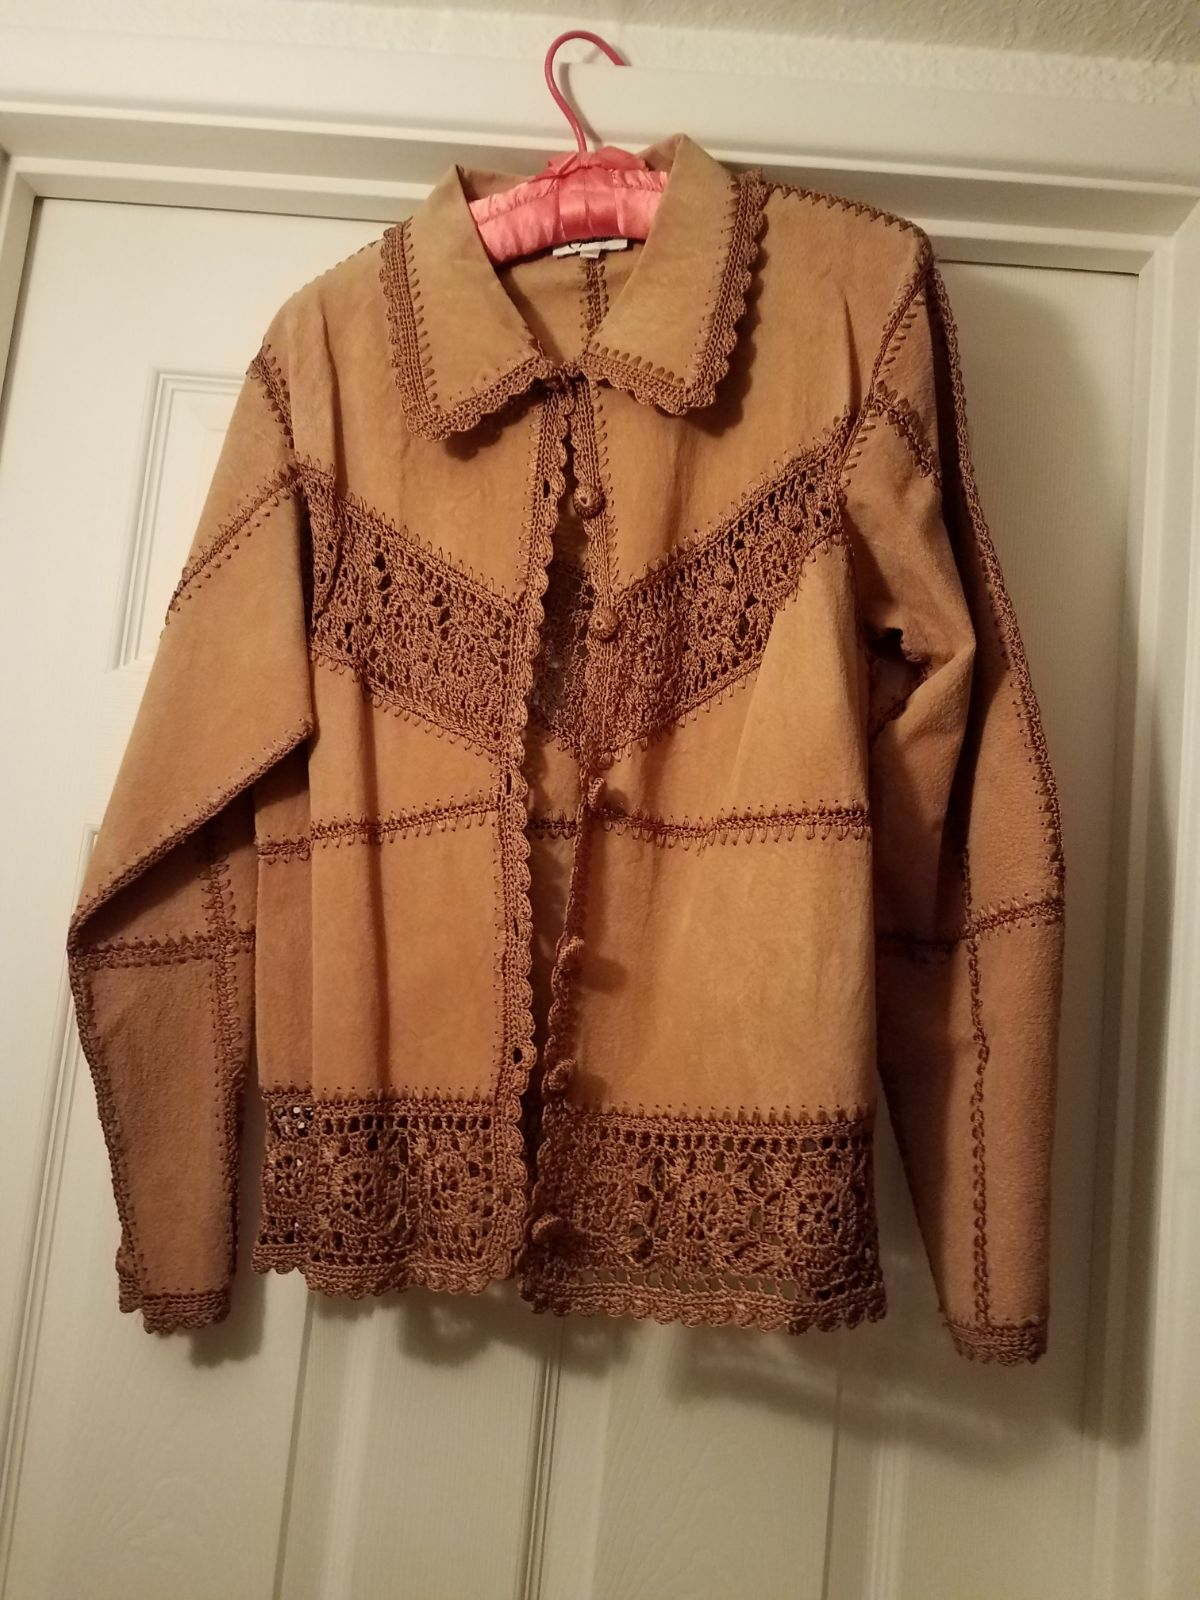 100% Suede Leather and Crochet Jacket